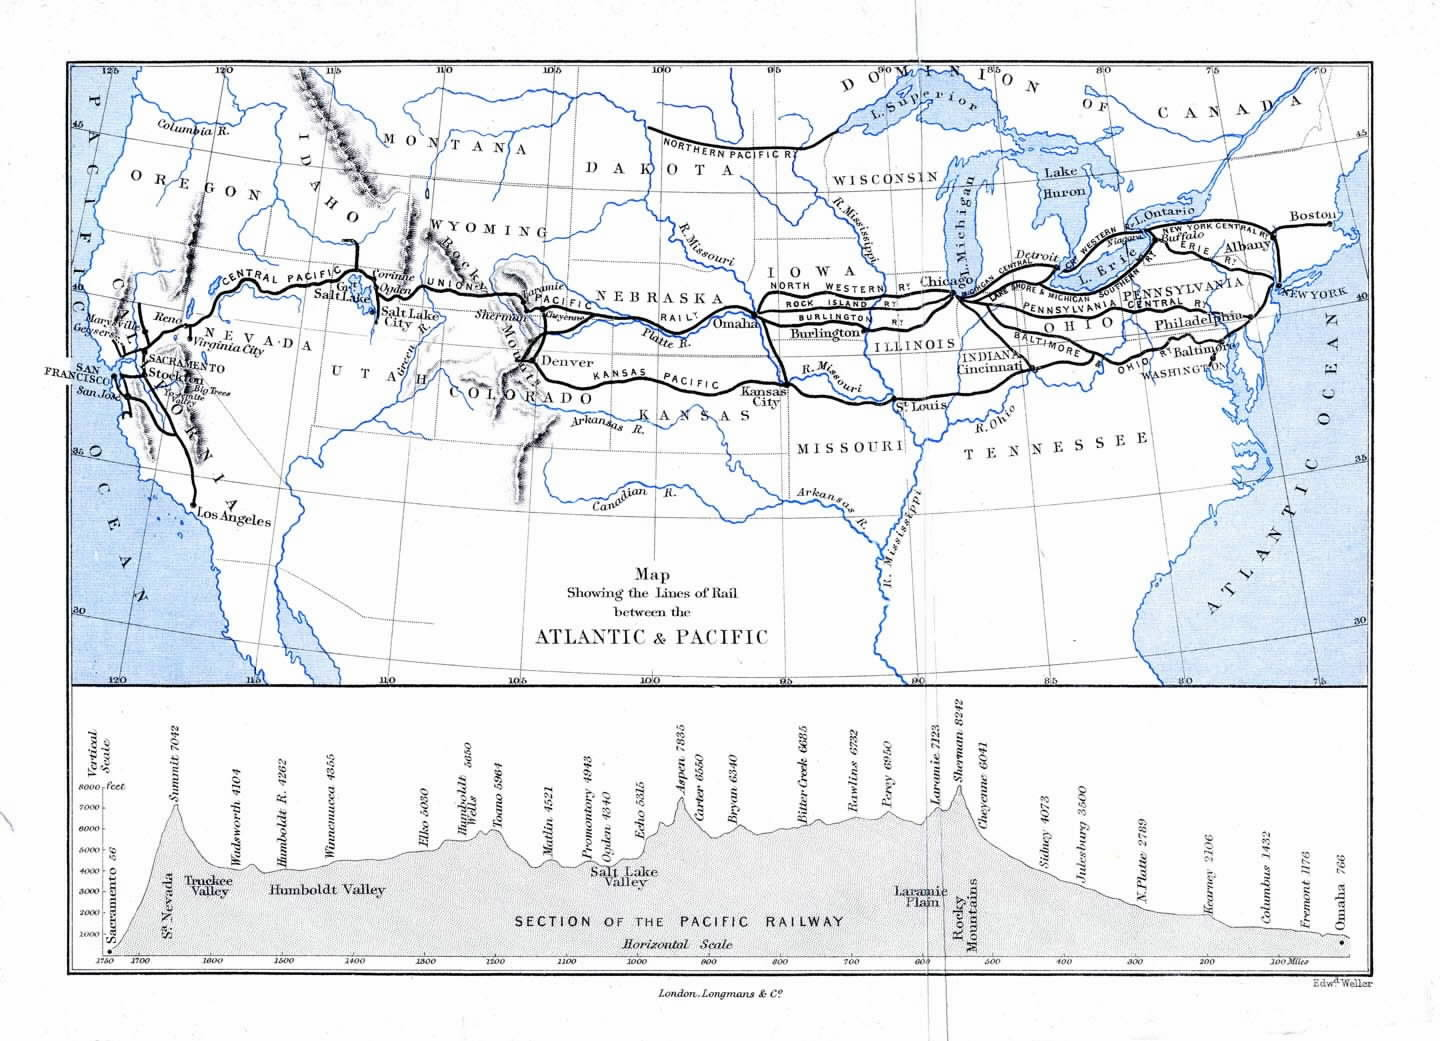 a history of transcontinental railroads The transcontinental railroad greatly boosted america's economy and contributed to the westward expansion before the railroad, the fastest way to migrate to the west was by wagon, a journey fraught with danger over plains, deserts, mountains and rivers.